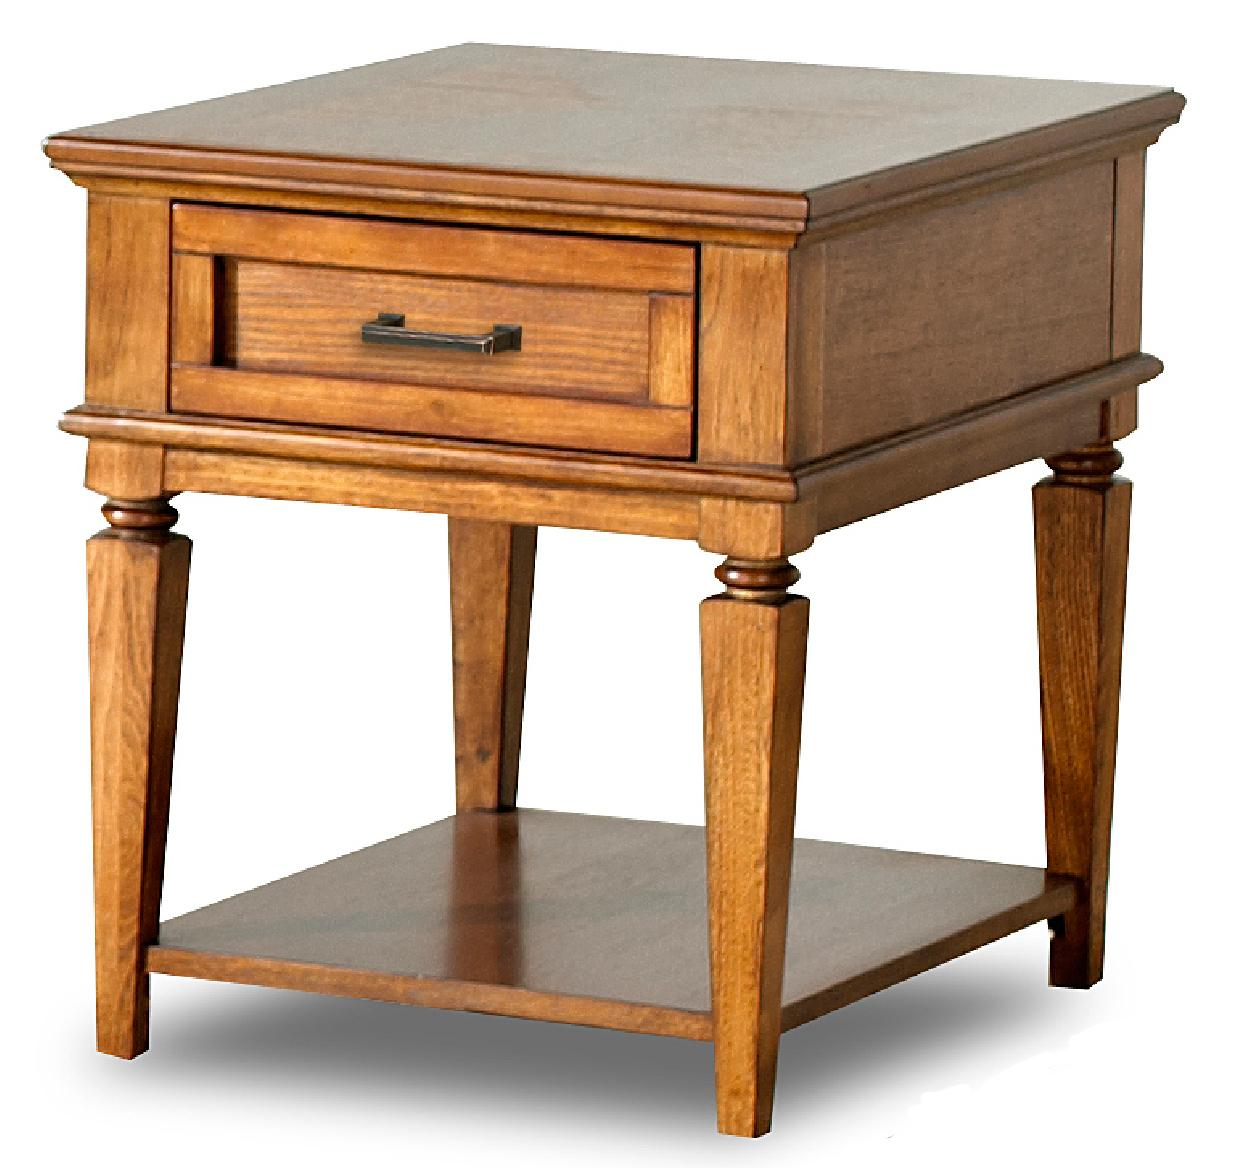 Concord transitional end table with drawer and shelf morris home end tables Morris home furniture hours